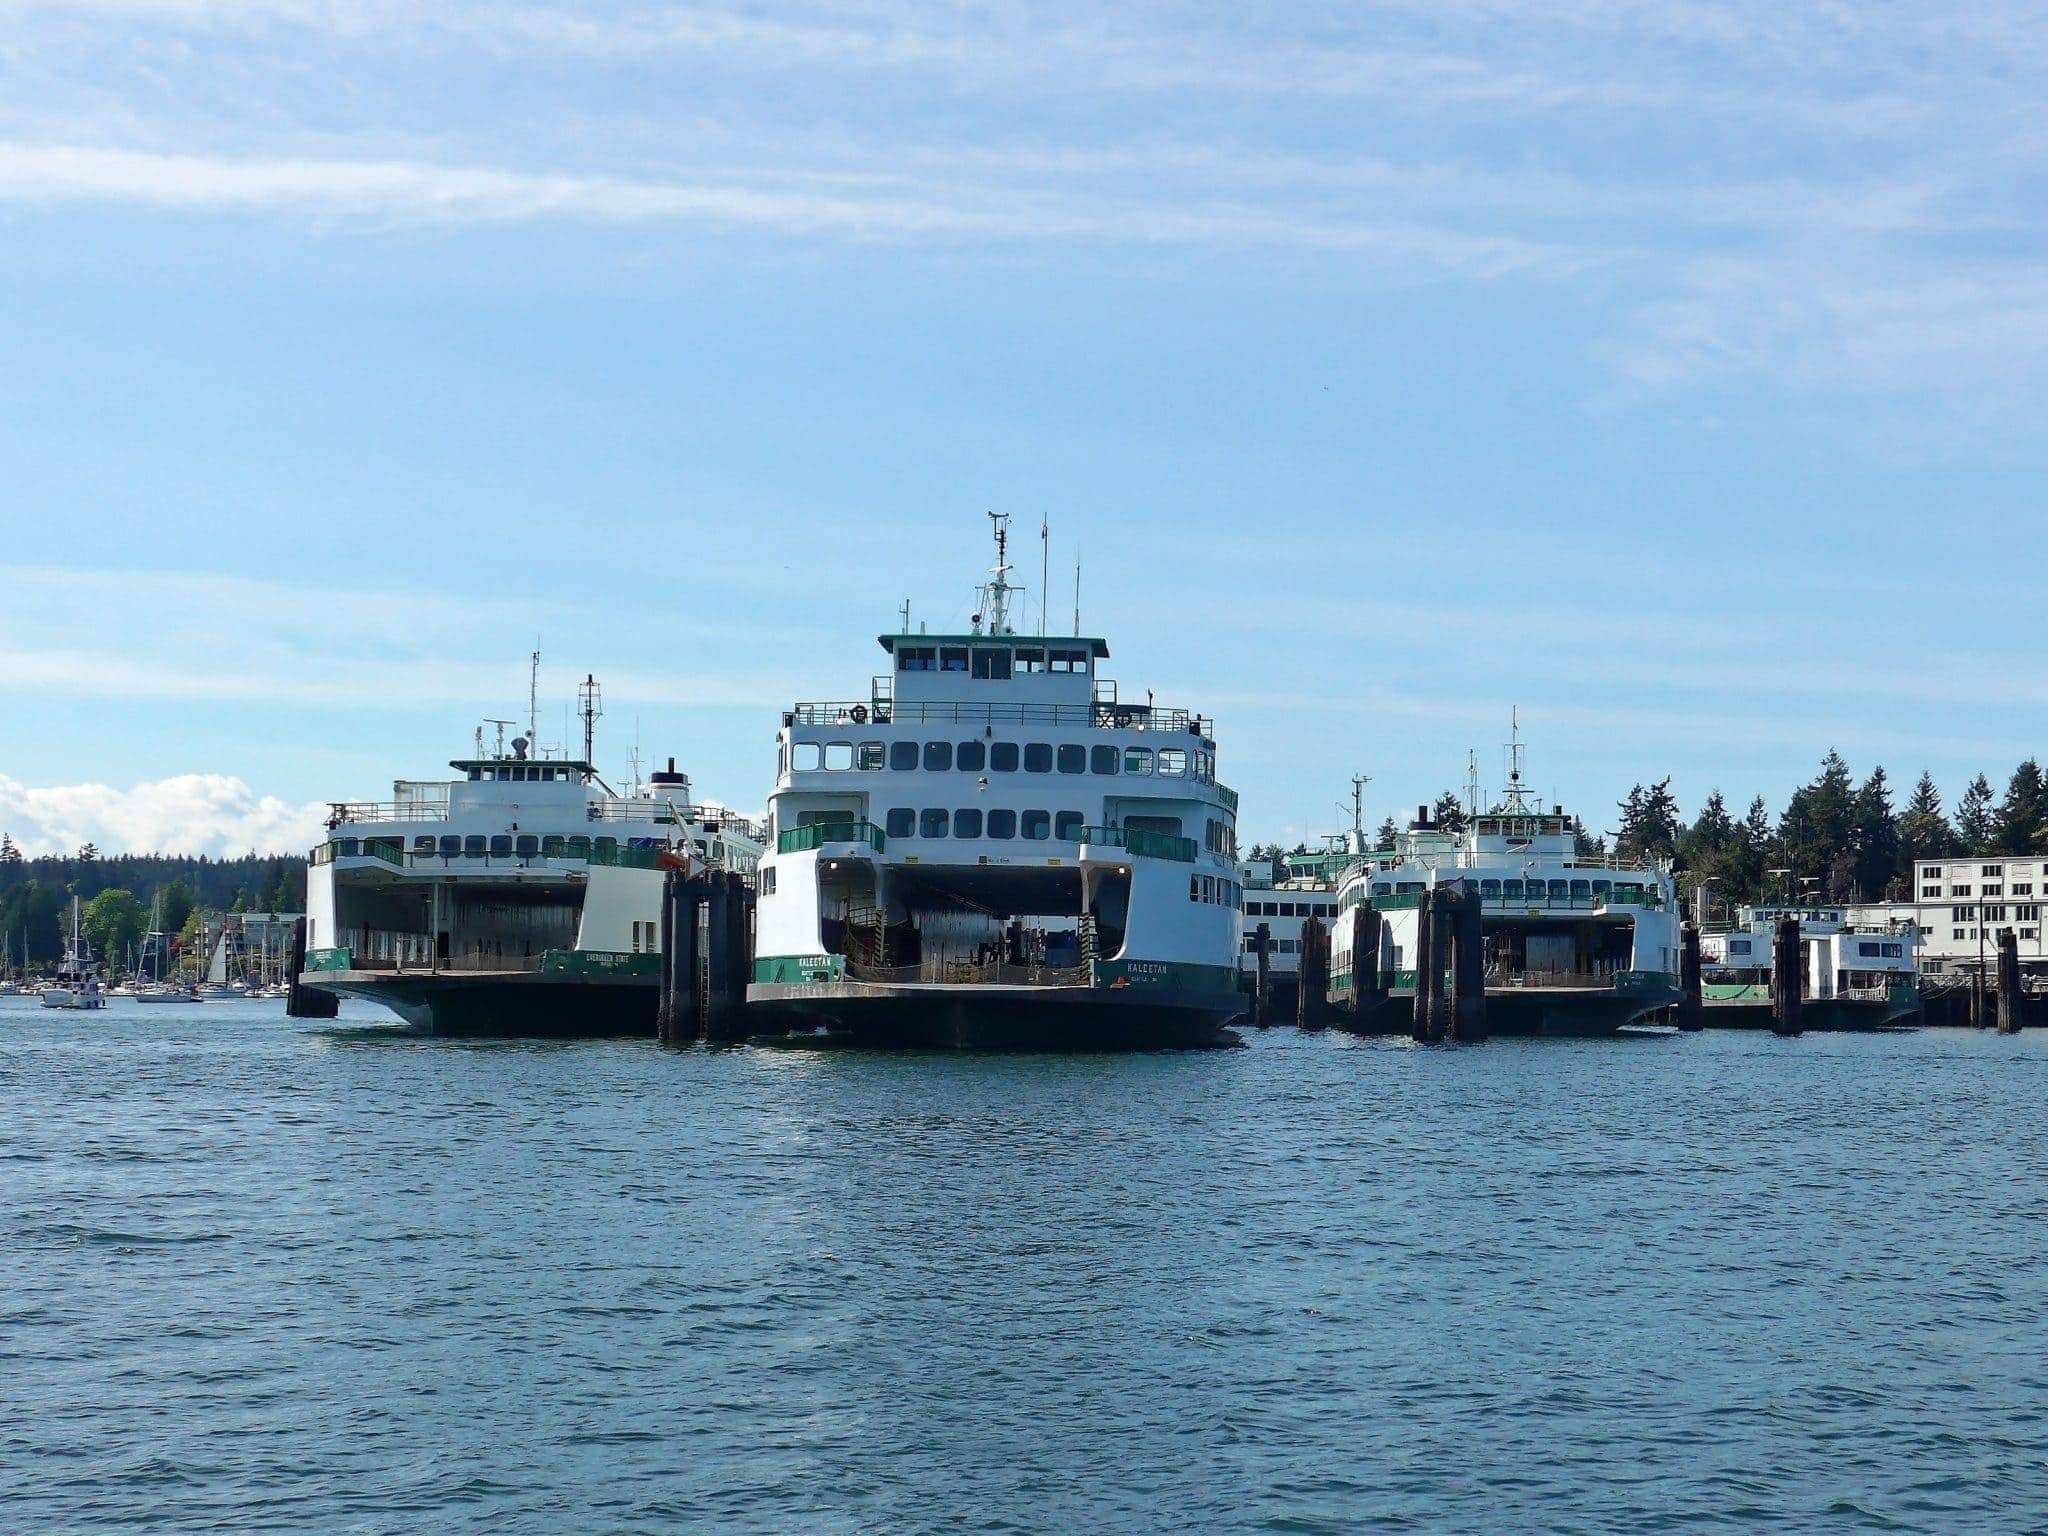 So many ferries! Pictured here are the Hiyu, Tillikum, Kaleetan and Evergreen State